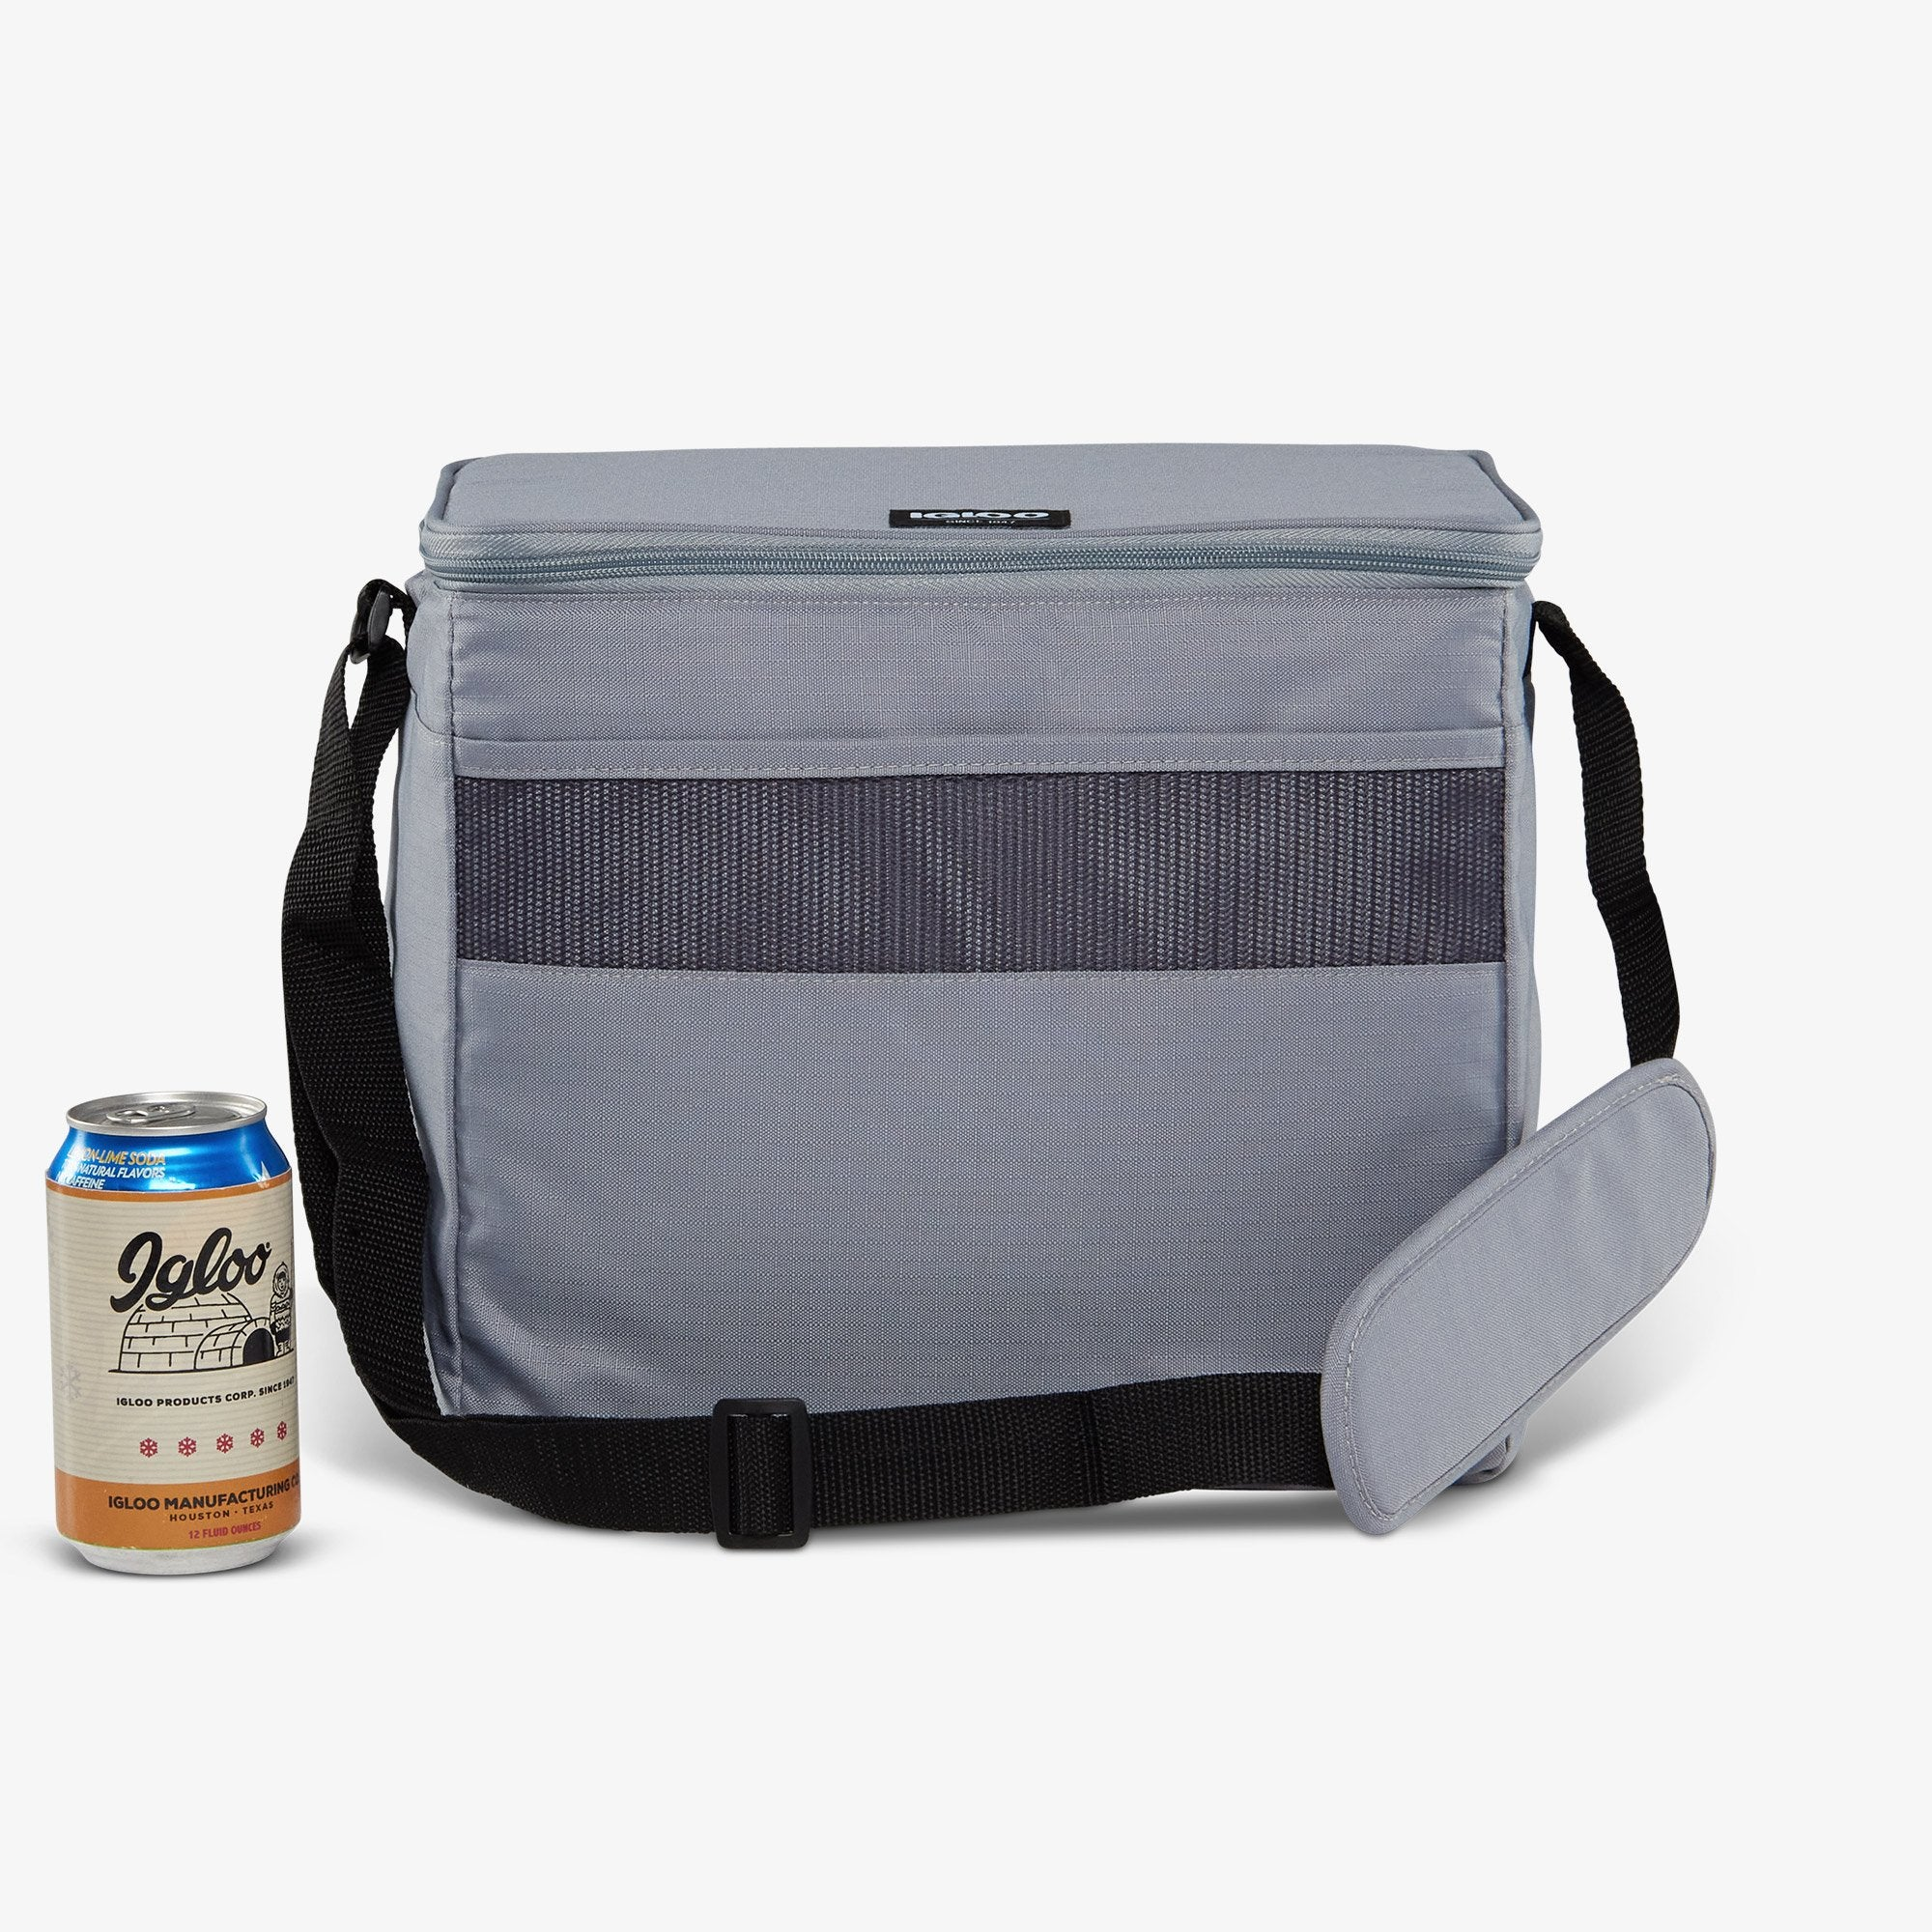 Details about  /NEW 2 PK Igloo  Collapse /& Cool  Lunch Bags Cooler  12 can 6 can capacity